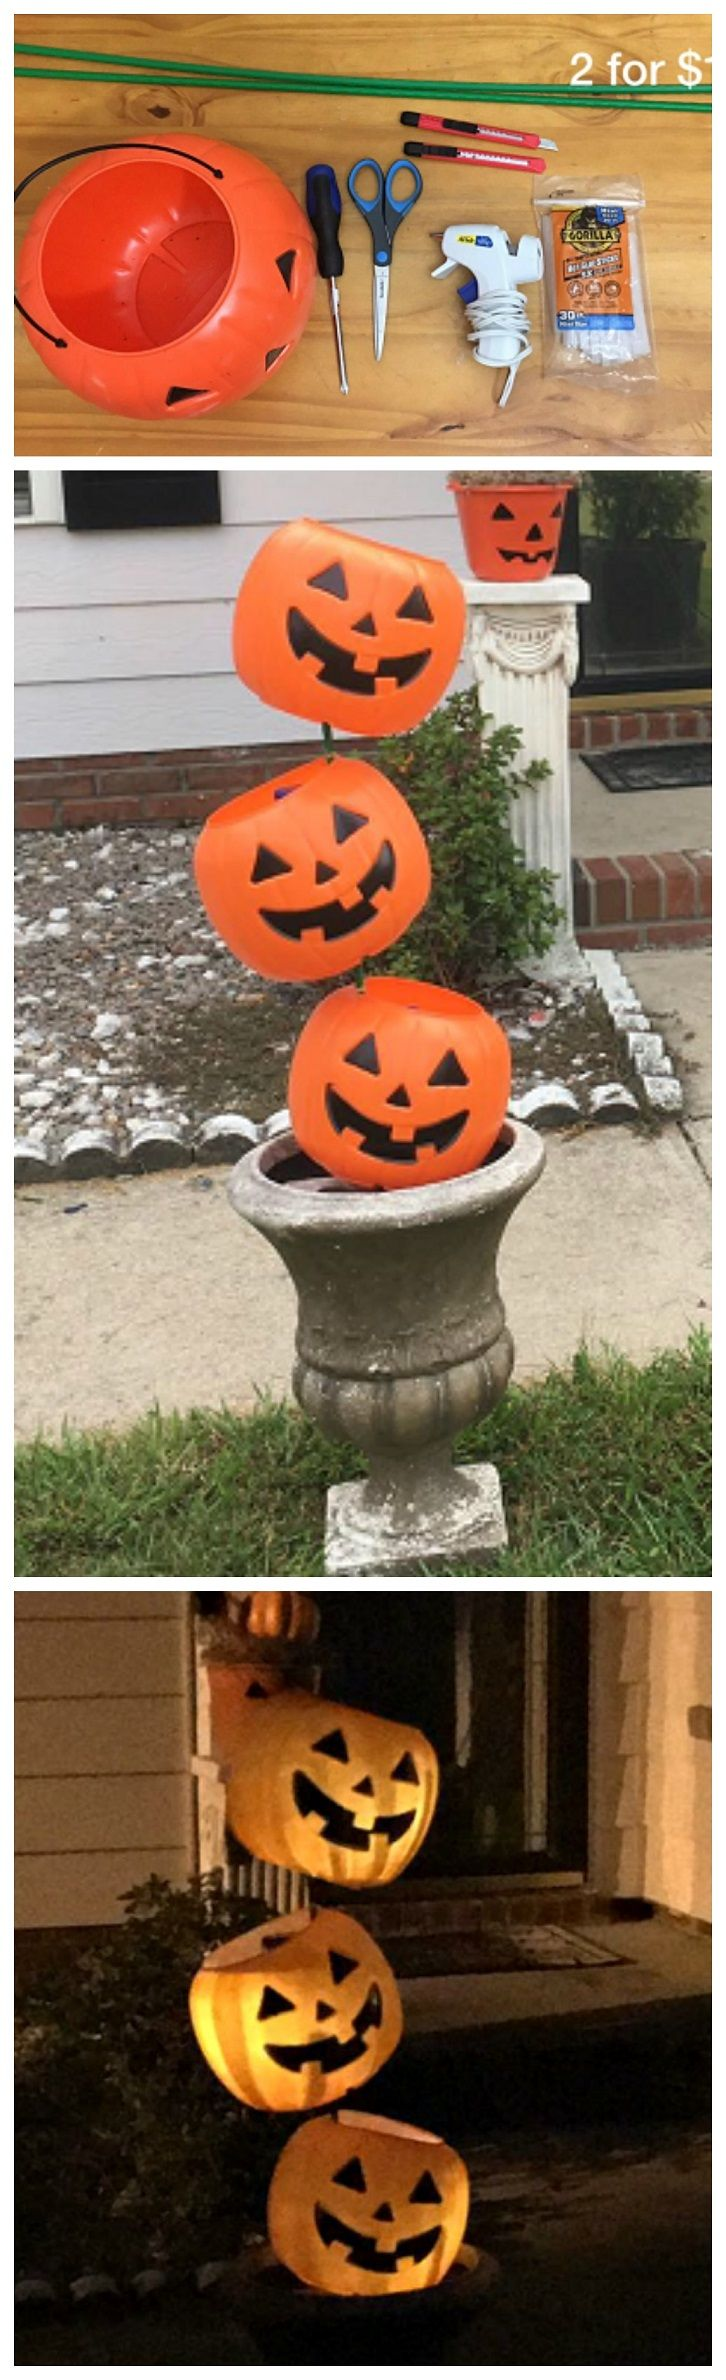 tipsy plastic pumpkin decoration homemade halloween decorationspumpkin decorationspumpkin ideashalloween - Homemade Halloween Party Decorations